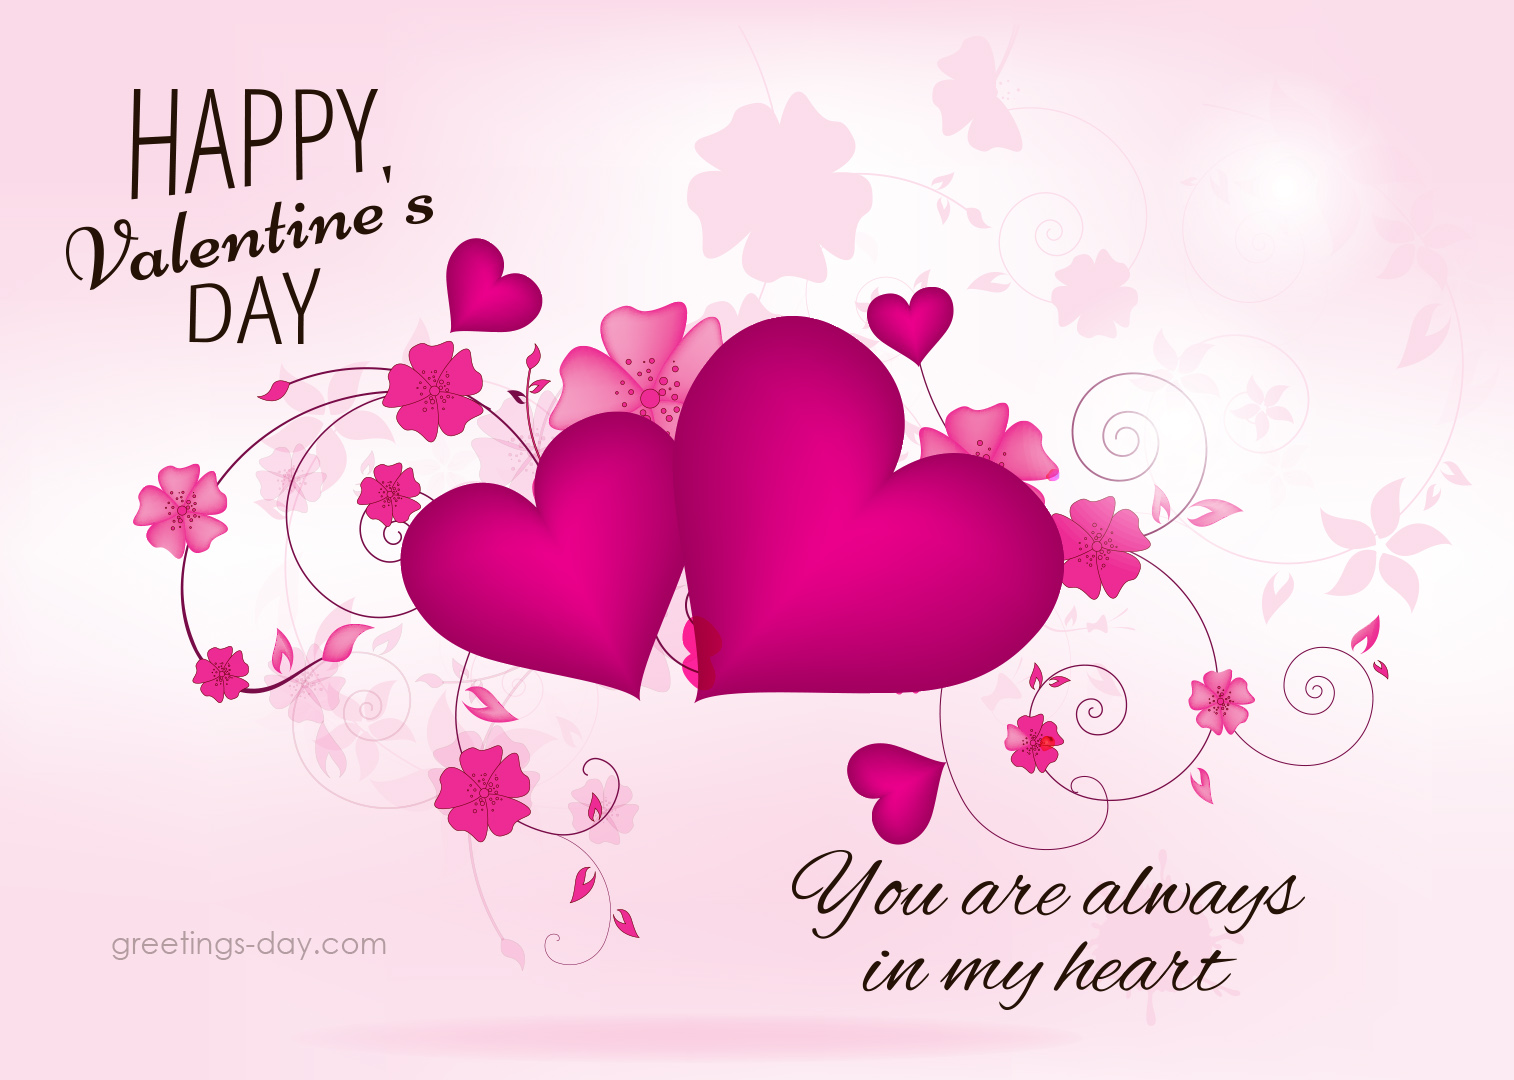 Happy Valentine Day. You are always in my heart.